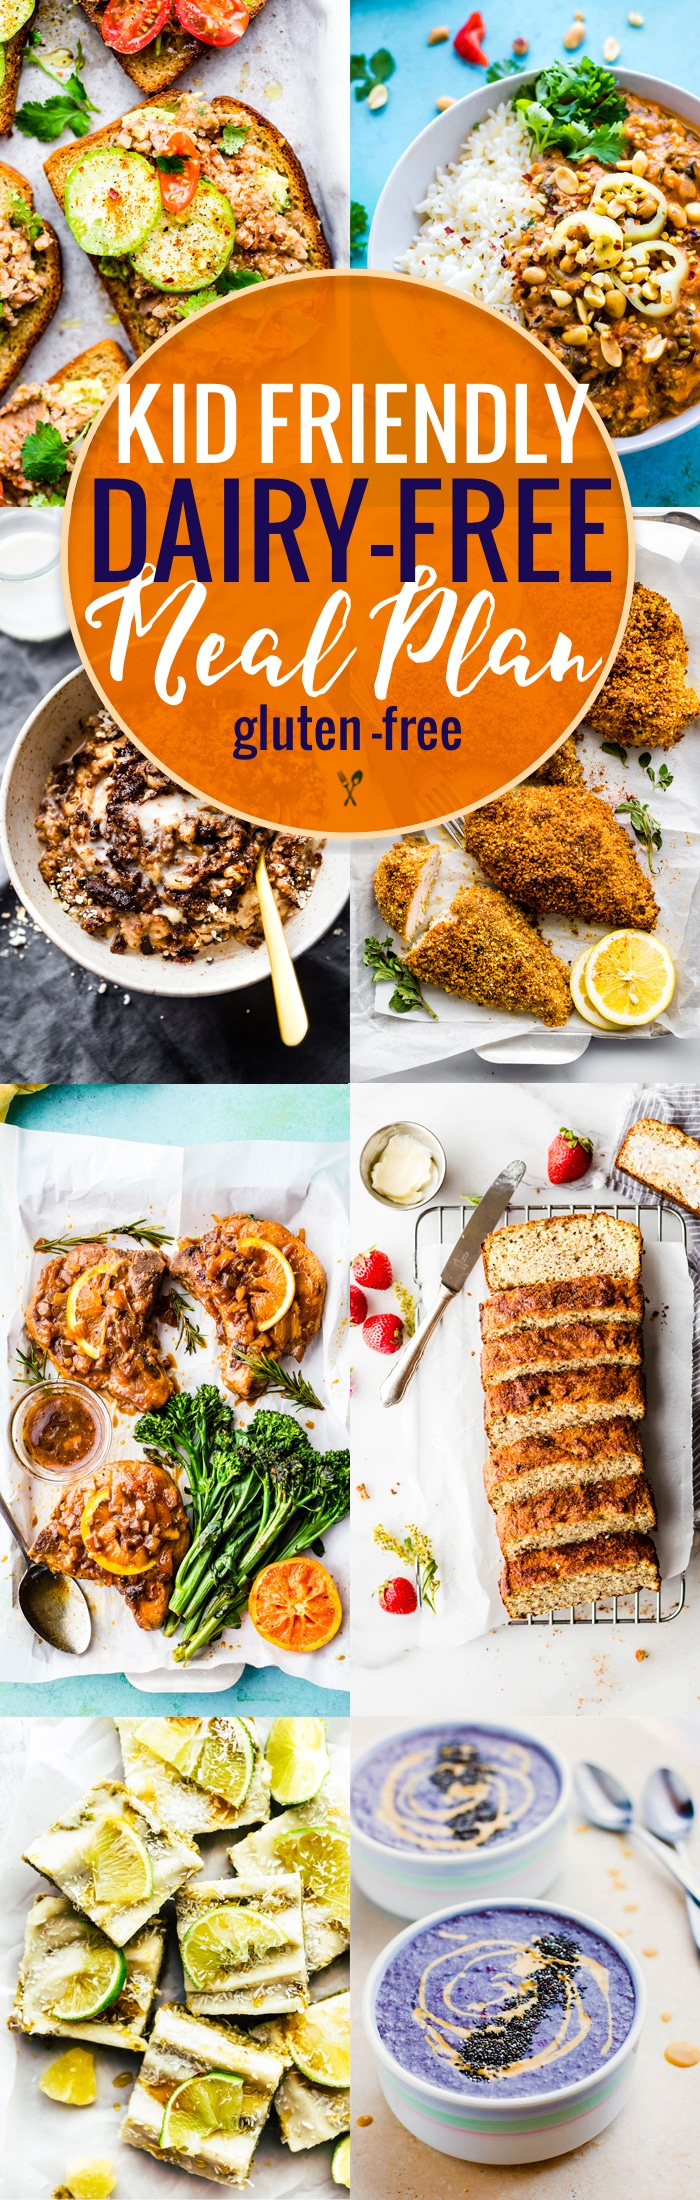 This kid friendly dairy-free meal plan is full of delicious back to school recipes that kids love! All of these kid friendly recipes are healthy, gluten free AND dairy free, making life a little less stressful for parents of kids who have food allergies. www.cottercrunch.com